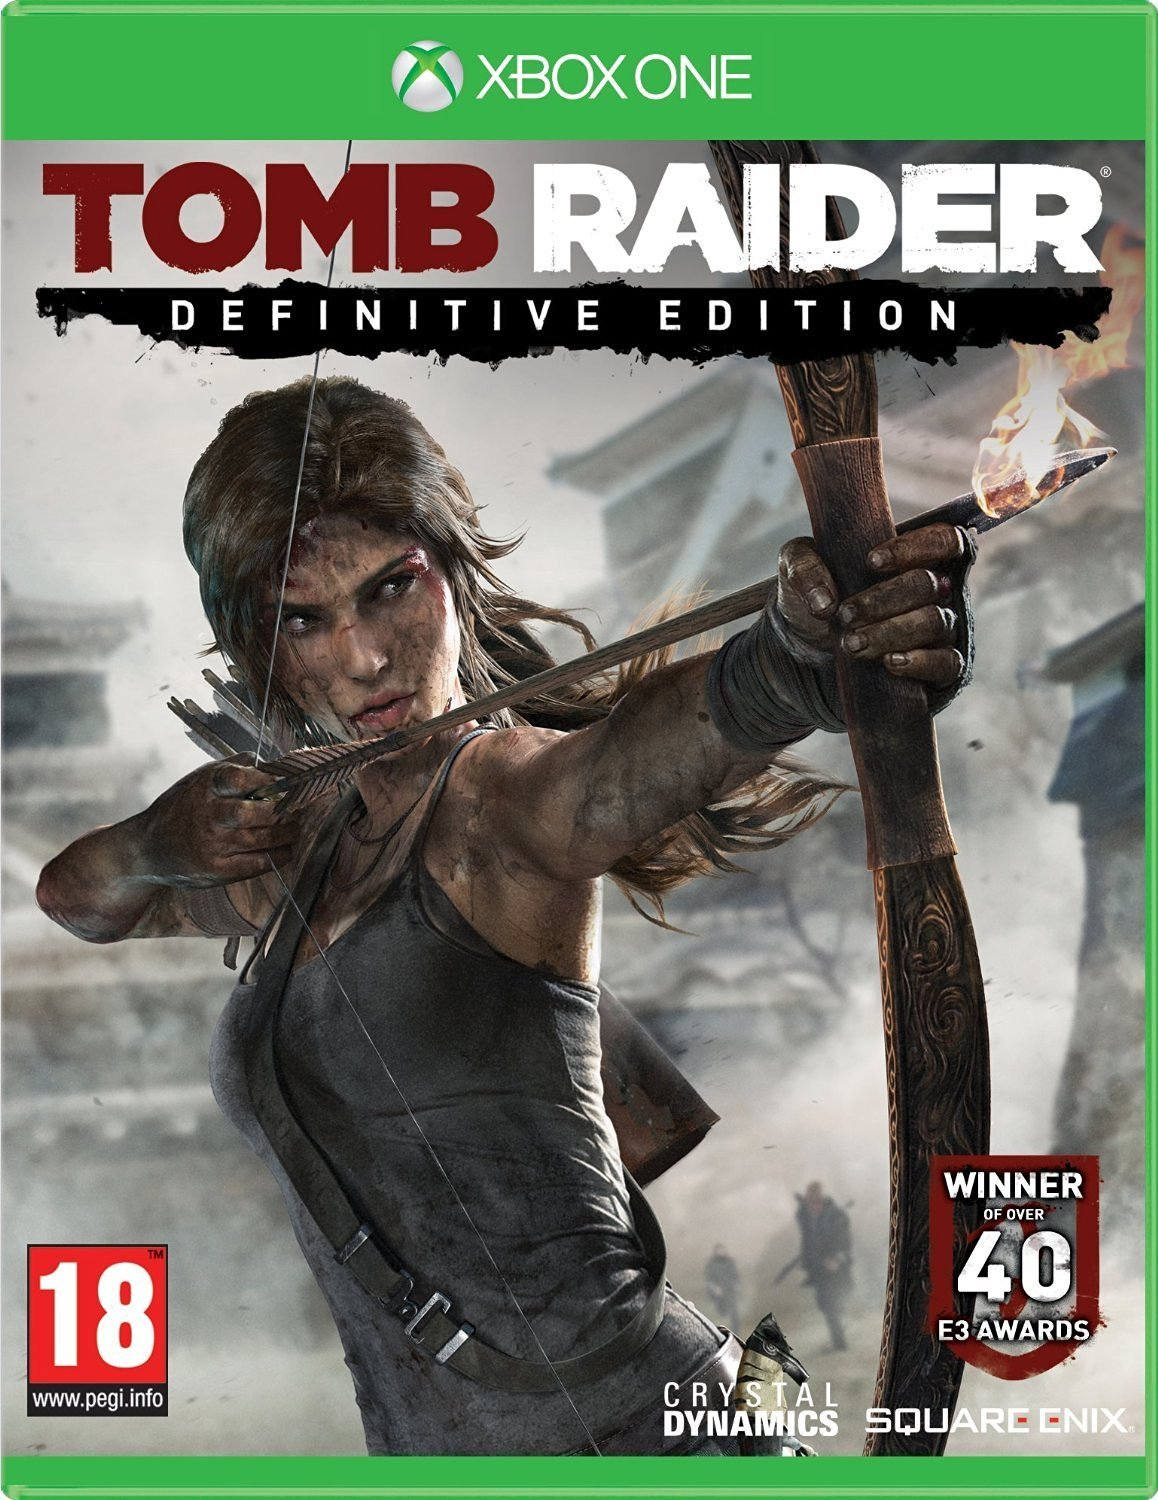 Tomb Raider Definitive Edition (Xbox One) product image